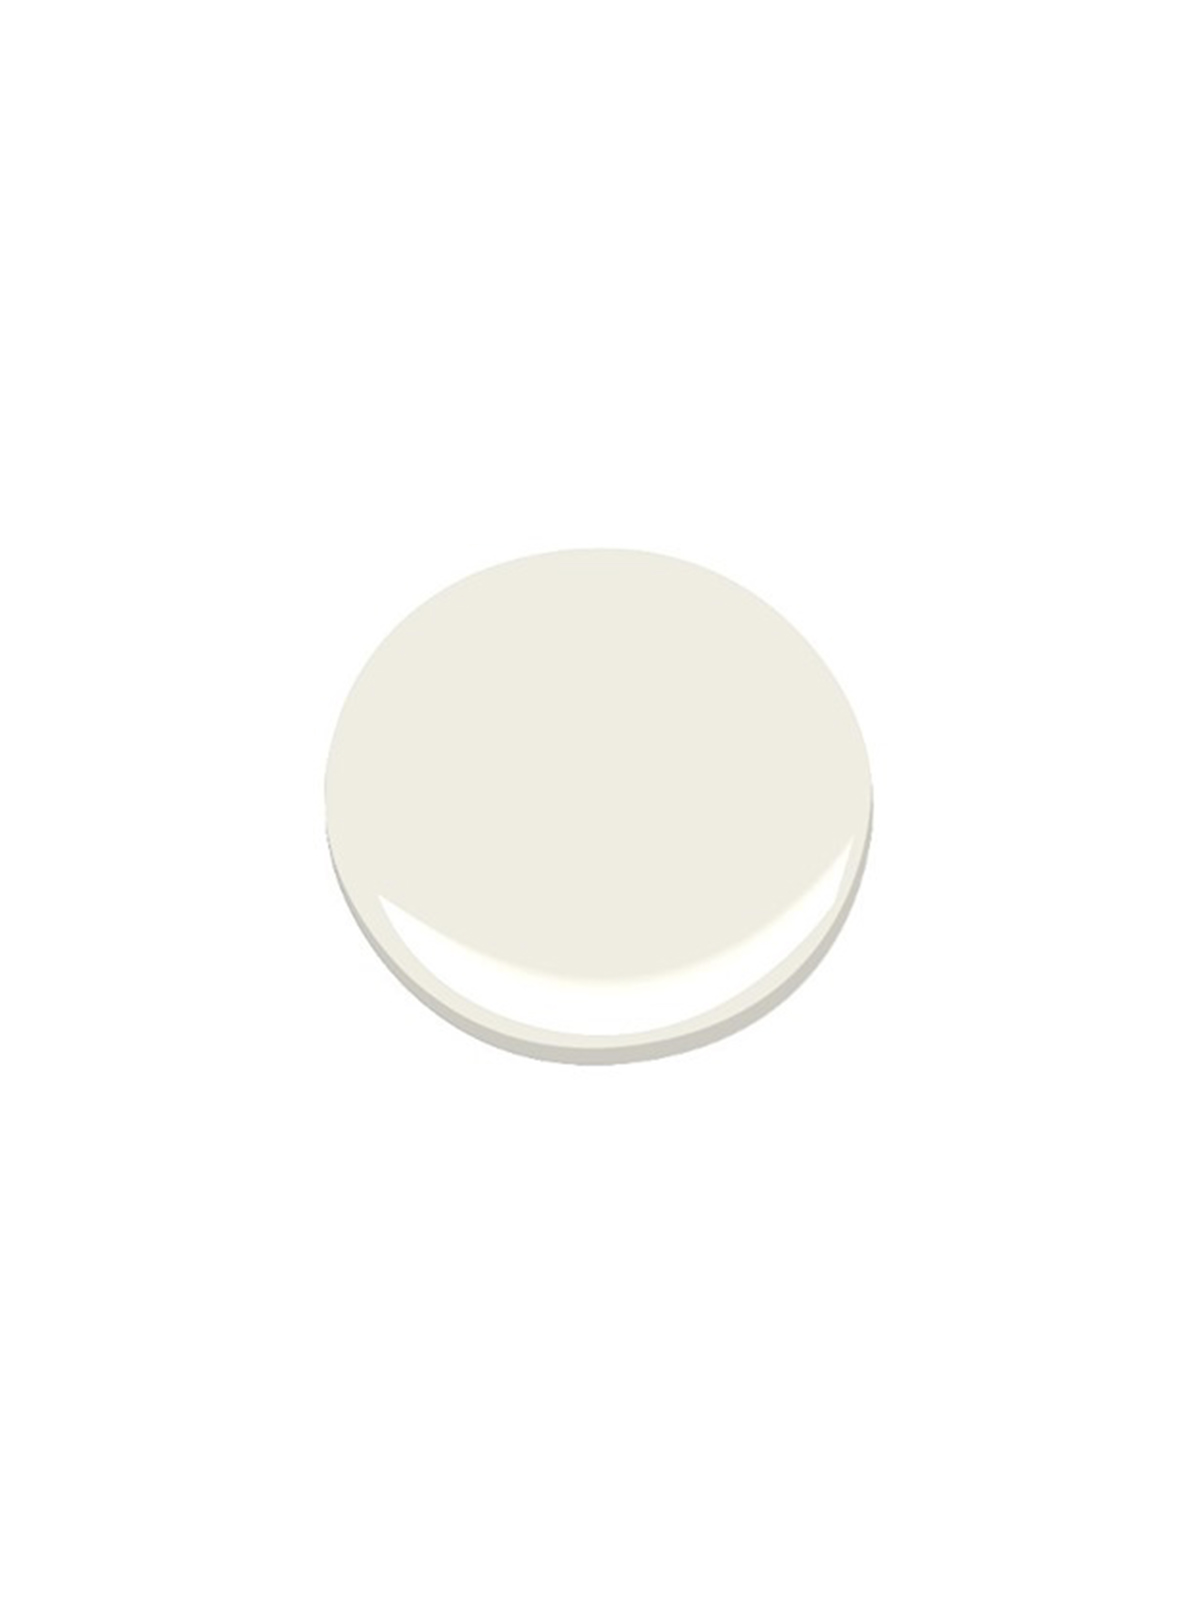 Paint Colors Look Larger, Swiss Coffee by Dunn Edwards